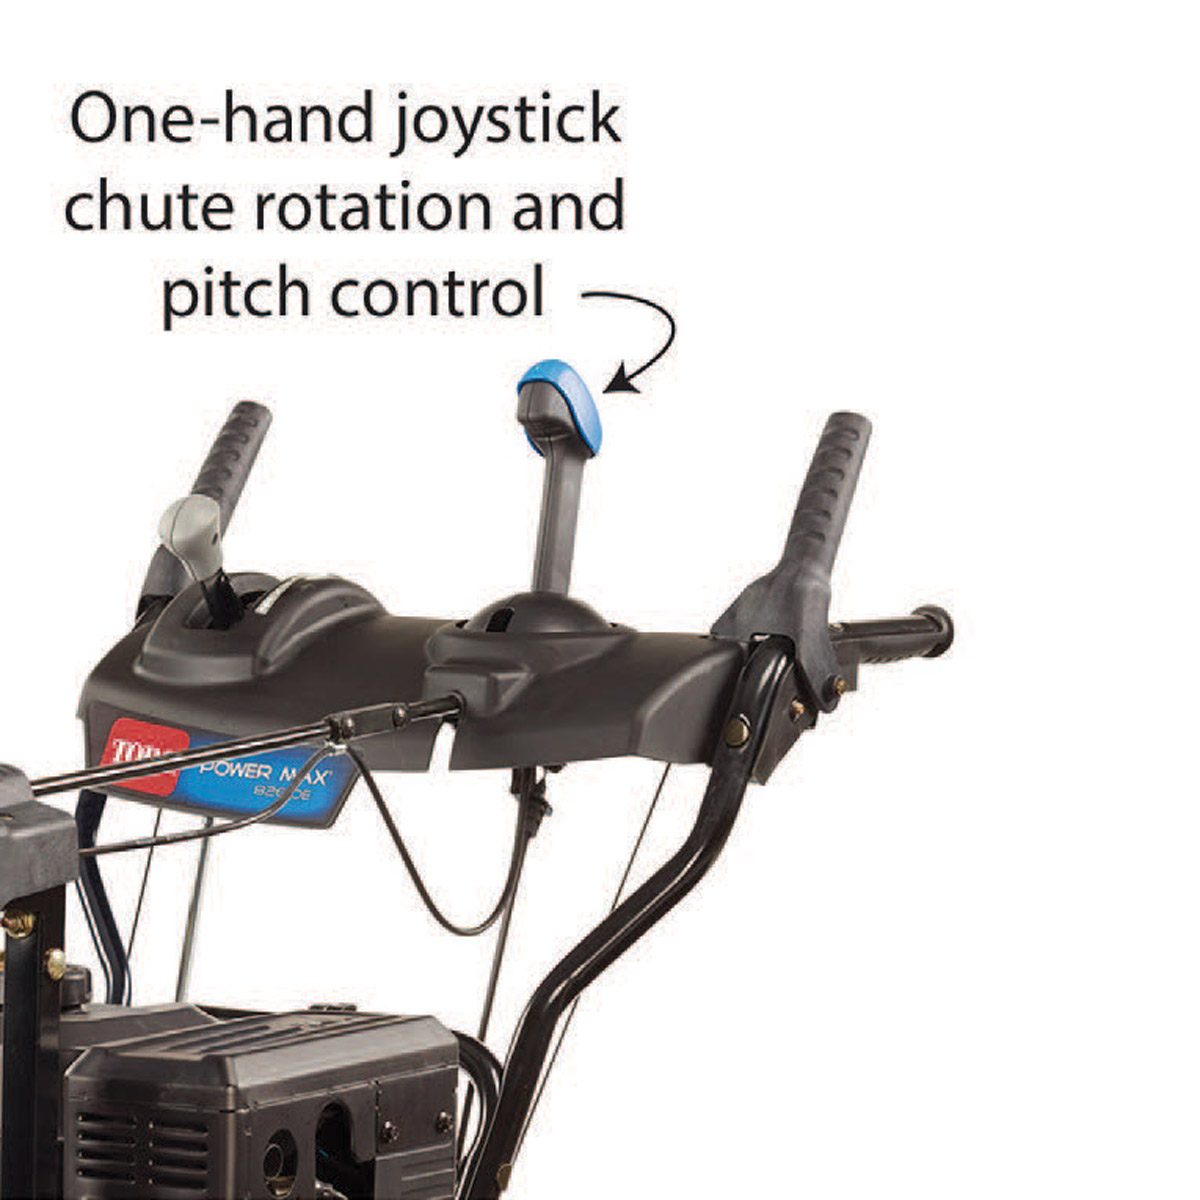 Auto chute rotation and chute pitch controls speed up the job